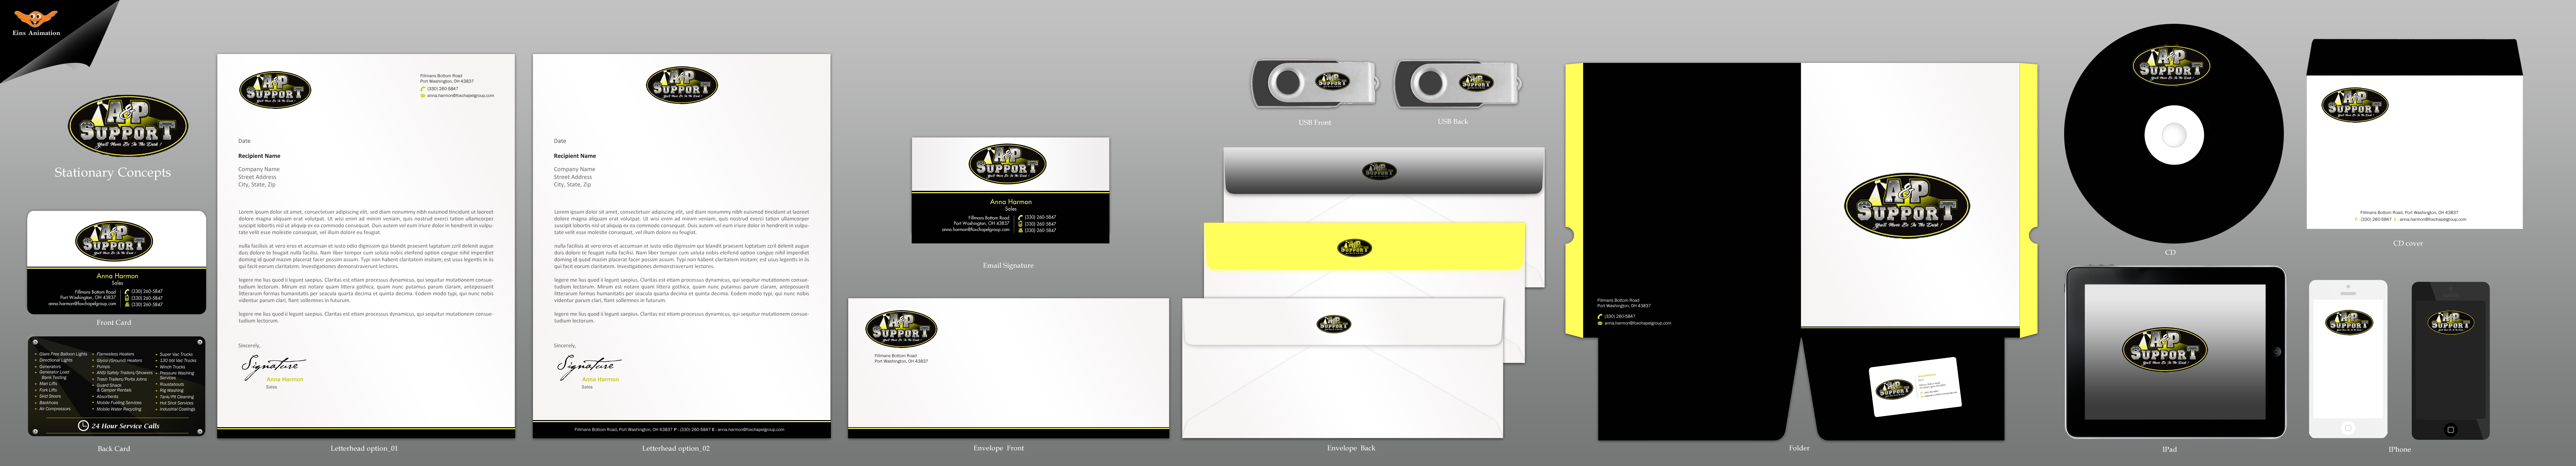 Business Card design for an Oilfield Service Co - Energy